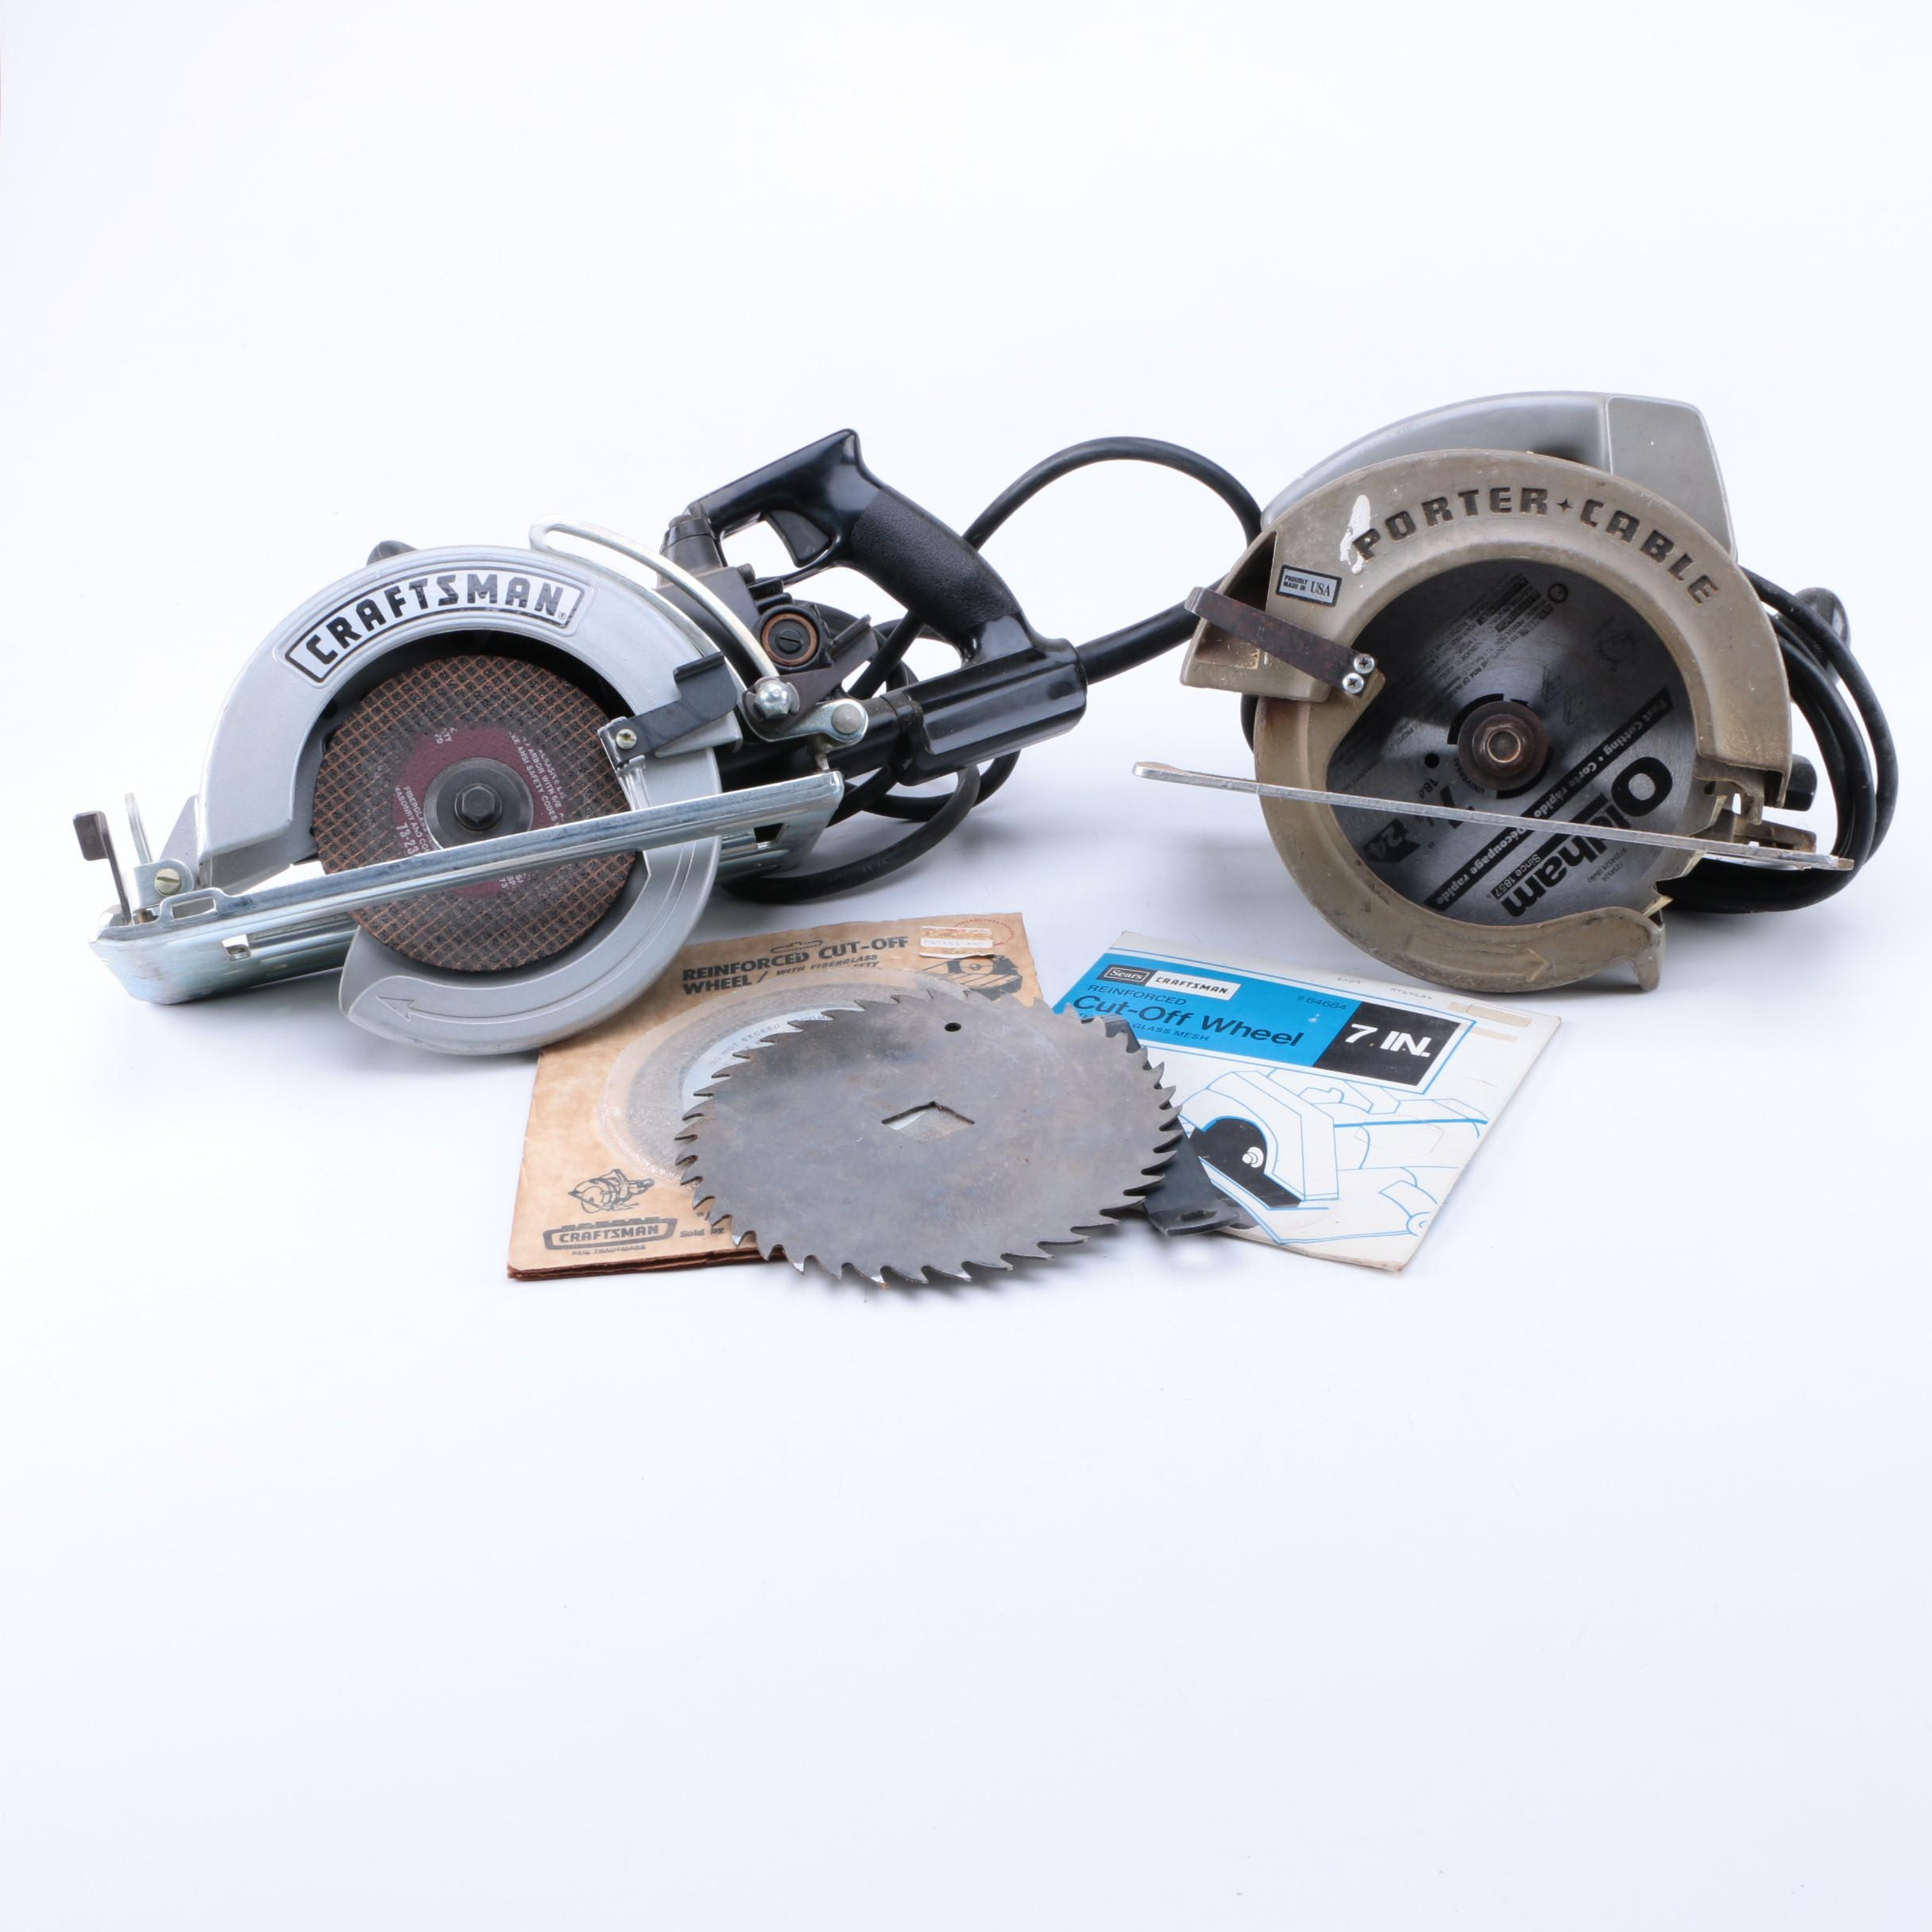 Rotary Saws and Blades